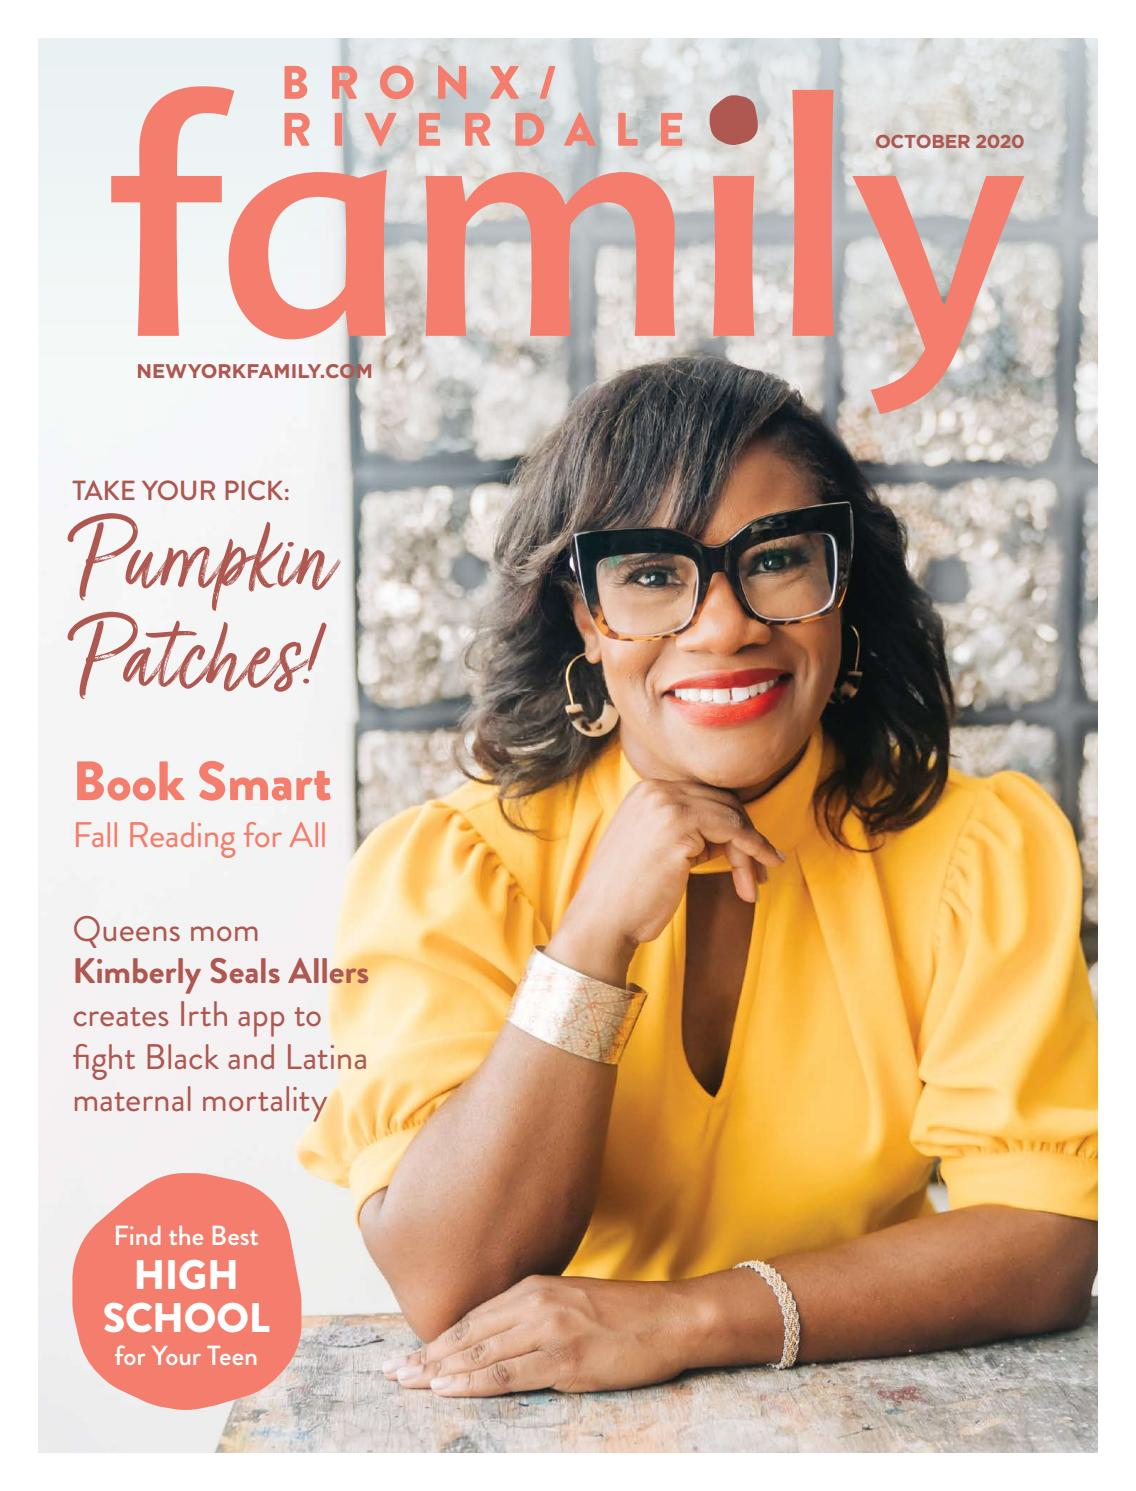 Where To Have Brunch, Halloween, October 2020, Bronx, Westchester County Bronx Family   October 2020 by Schneps Media Digital Editions   issuu